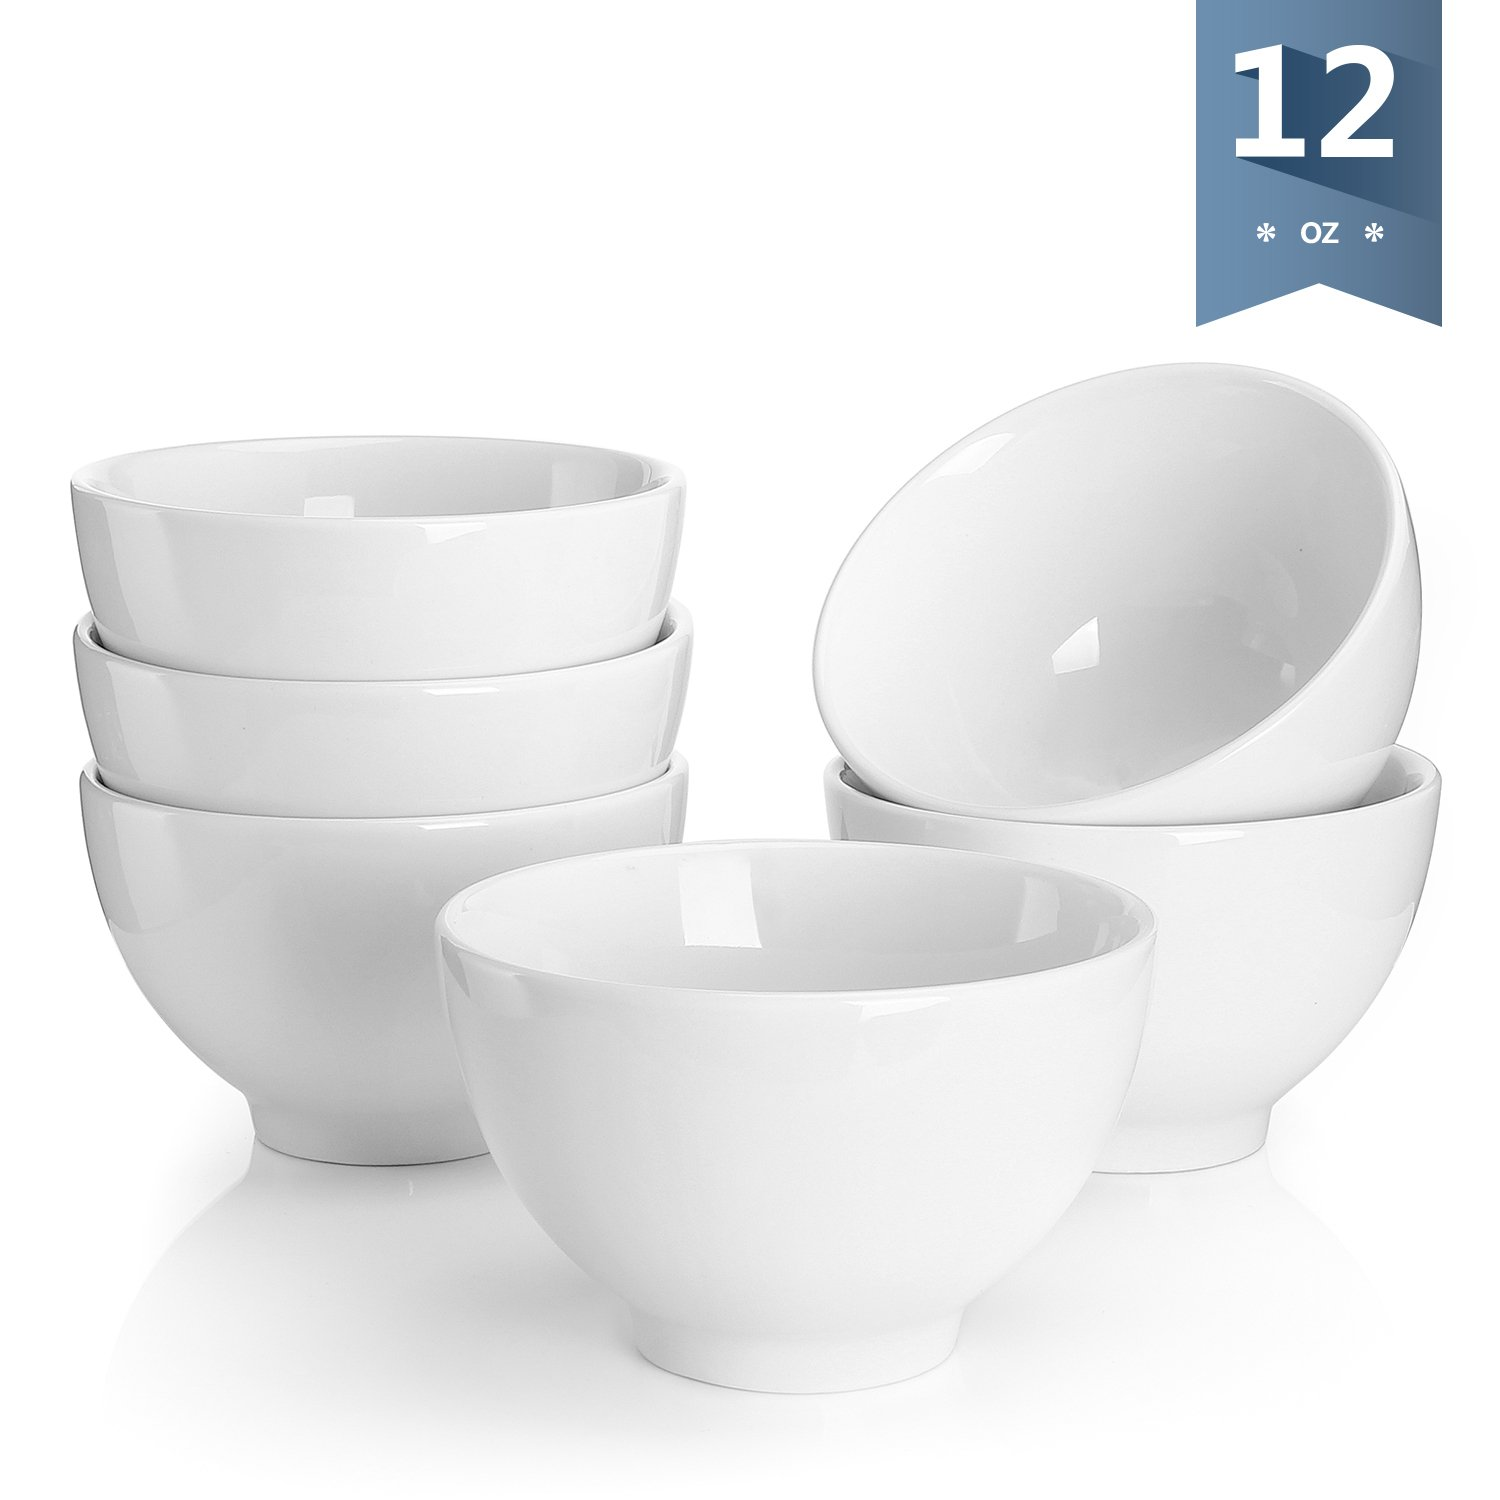 Sweese 1307 Porcelain Small Asian Bowls - 12 Ounce for Rice, Snack, Salad, Ice Cream - Set of 6, White